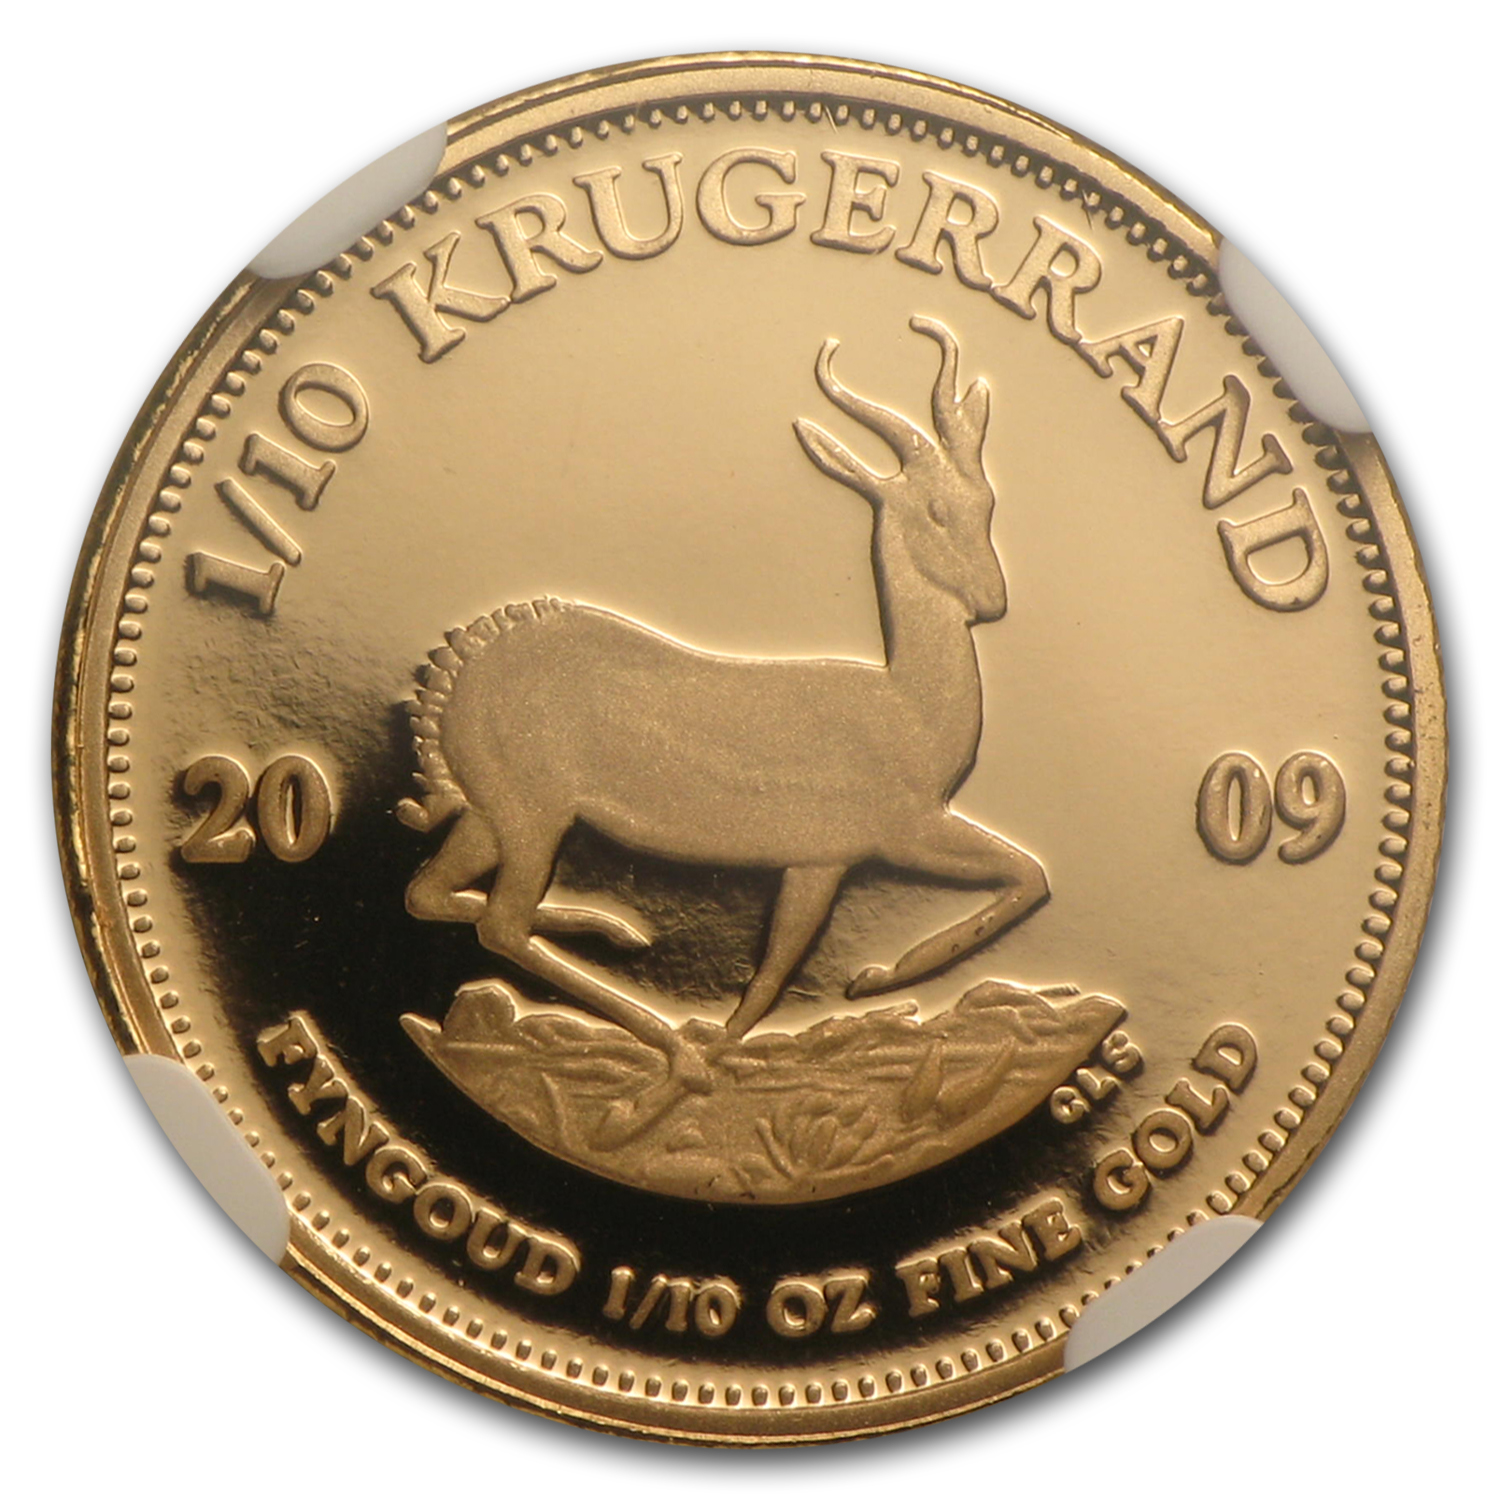 2009 South Africa 1/10 oz Gold Krugerrand PF-69 NGC